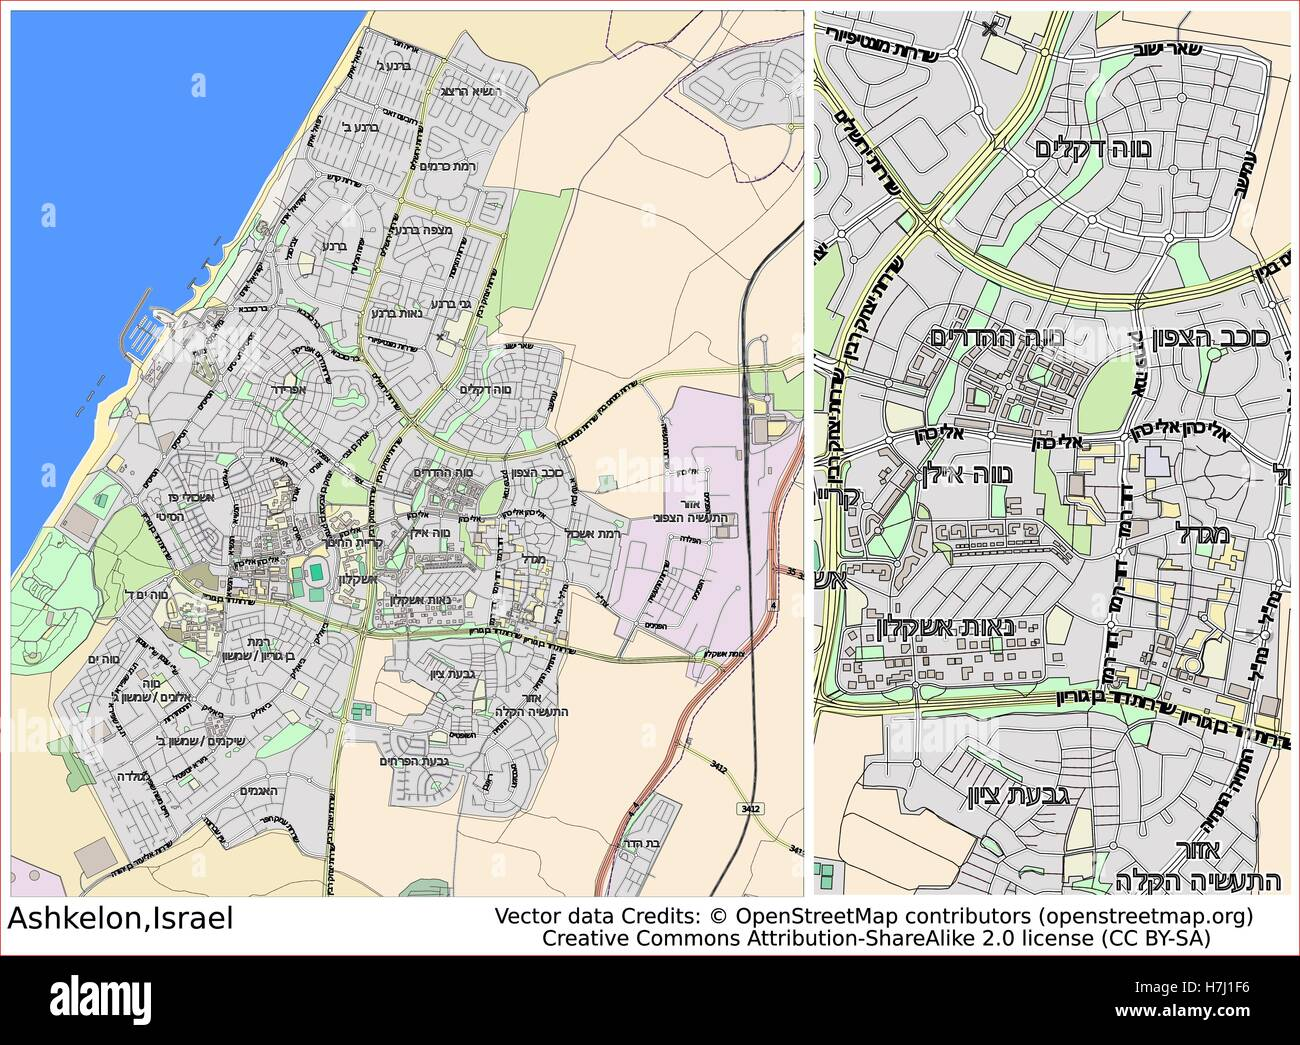 Ashkelon Israel aerial view city map Stock Photo 125171514 Alamy